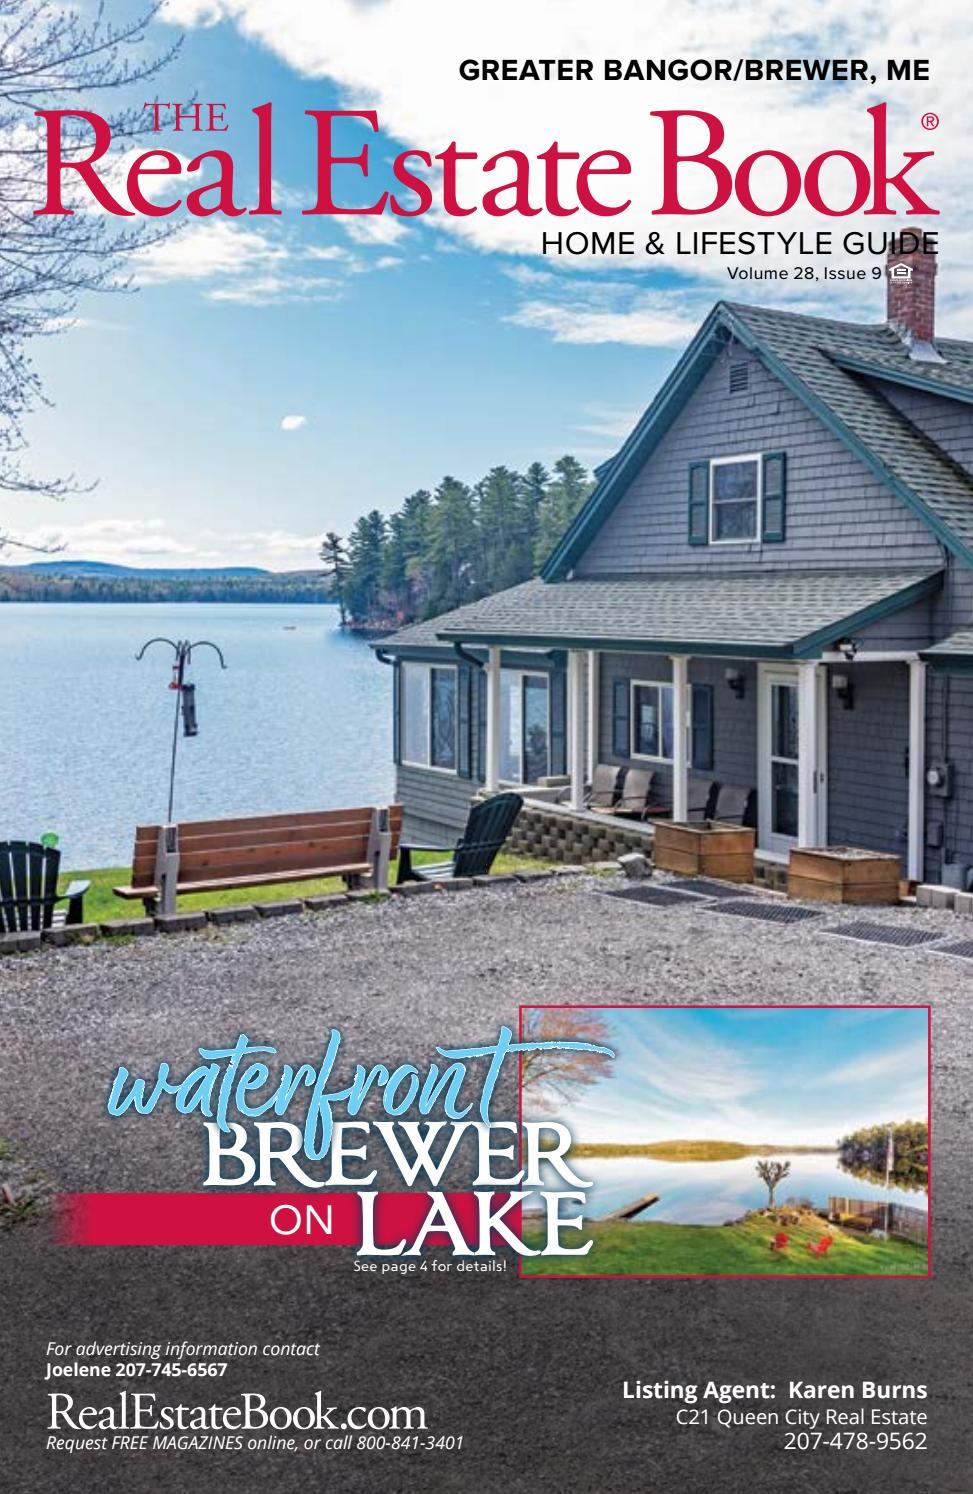 Real Estate Book of Greater Bangor Maine Issue 9 by The Real